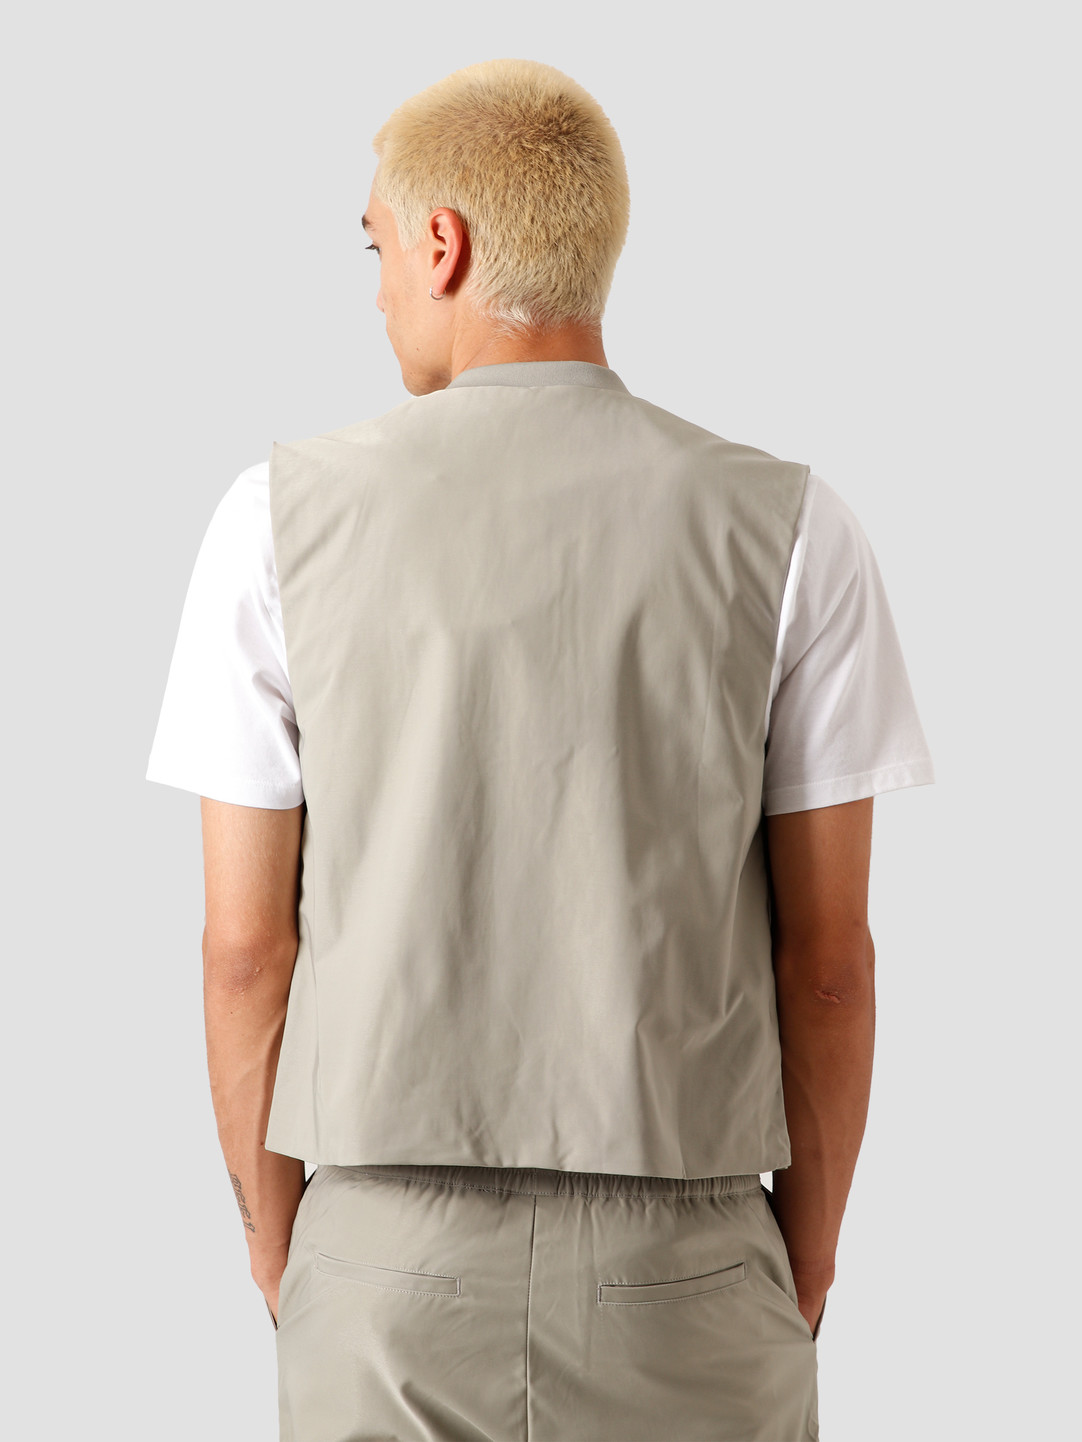 Daily Paper Daily Paper Recargo Vest Mintgreen 20S1AC53-02-9